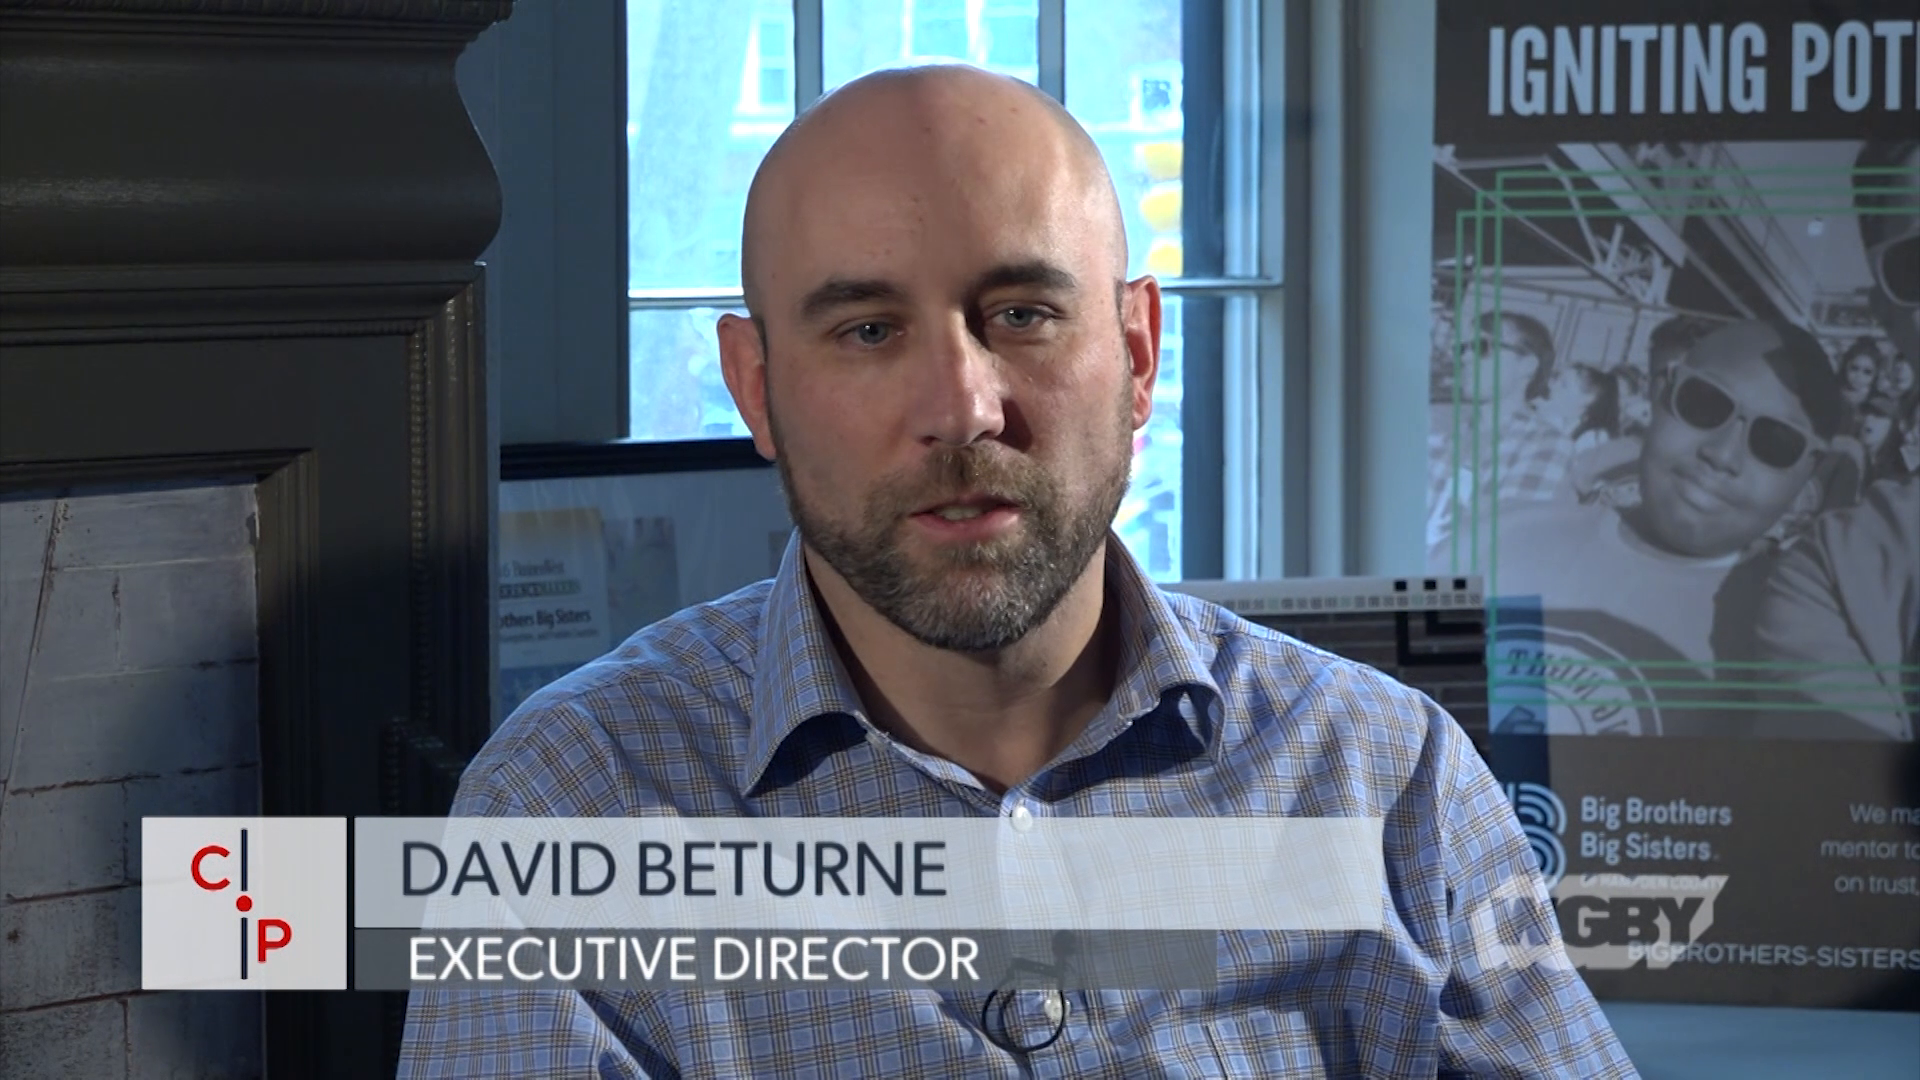 Big Brothers Big Sisters Executive Director David Beturne reflects on the organization's 50 years of connecting Hampden County children with adult mentors.